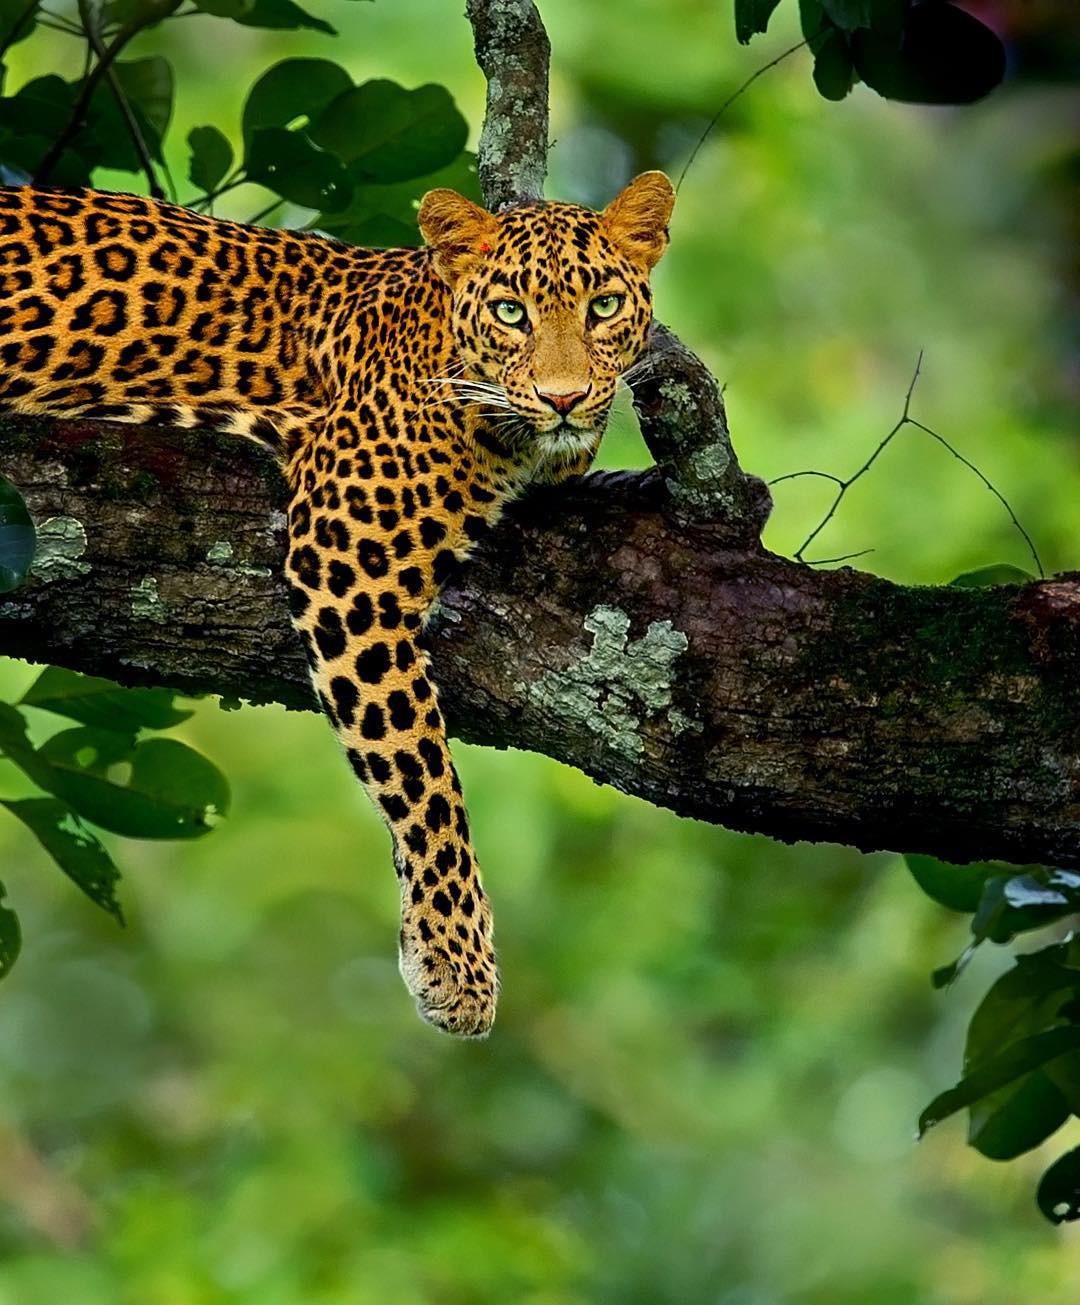 A leopard lying on a tree branch, its left paw dangling free.